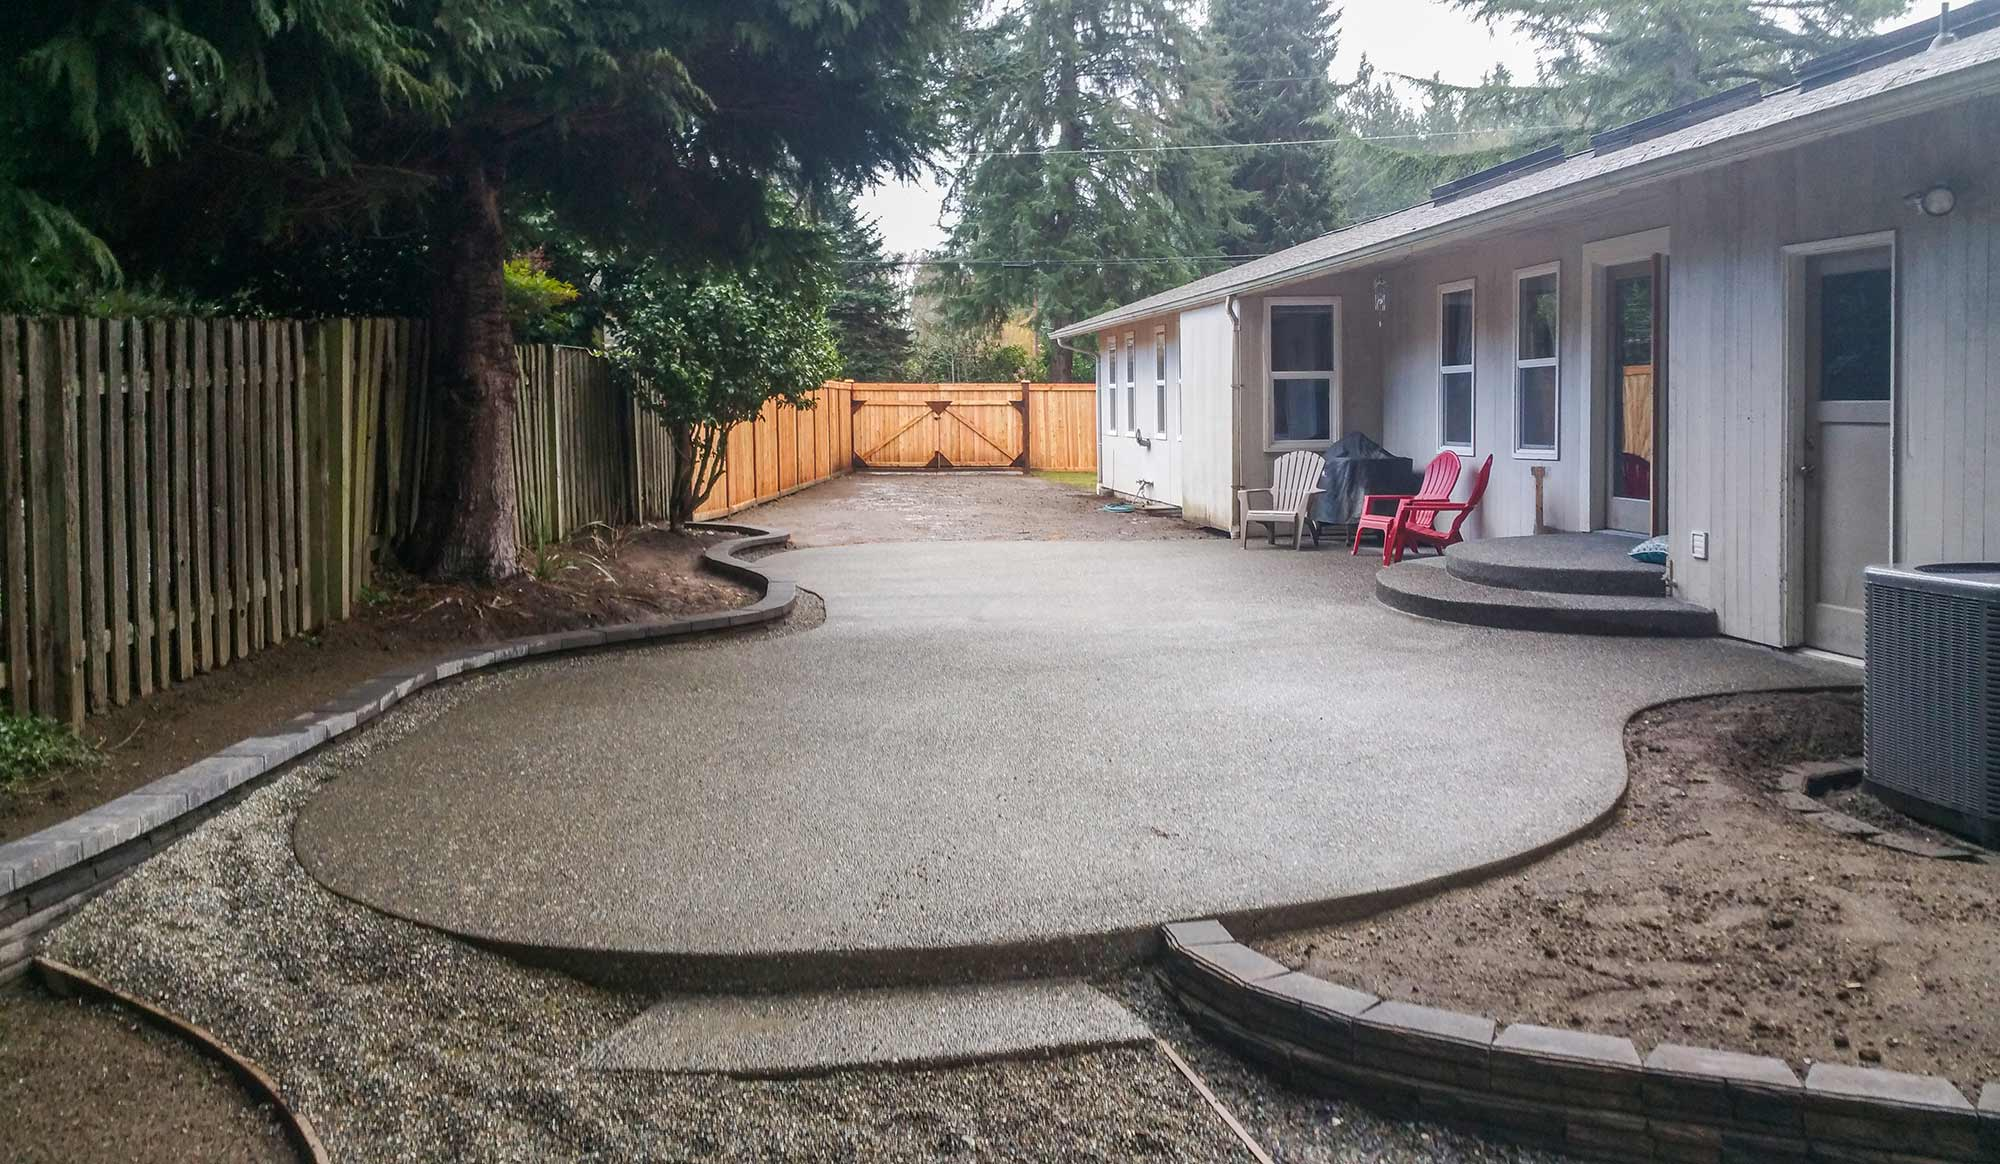 Concrete Patio Work : Concrete and paver patio installation in olympia